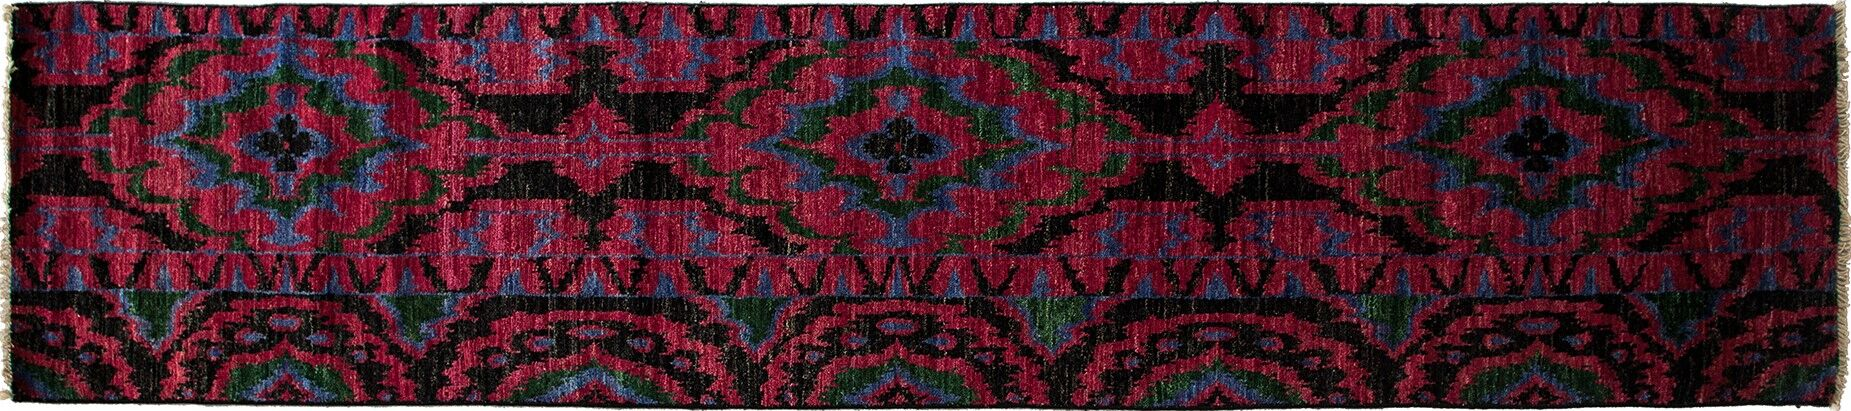 One-of-a-Kind Ikat Hand-Knotted Pink Area Rug Rug Size: Runner 2'7